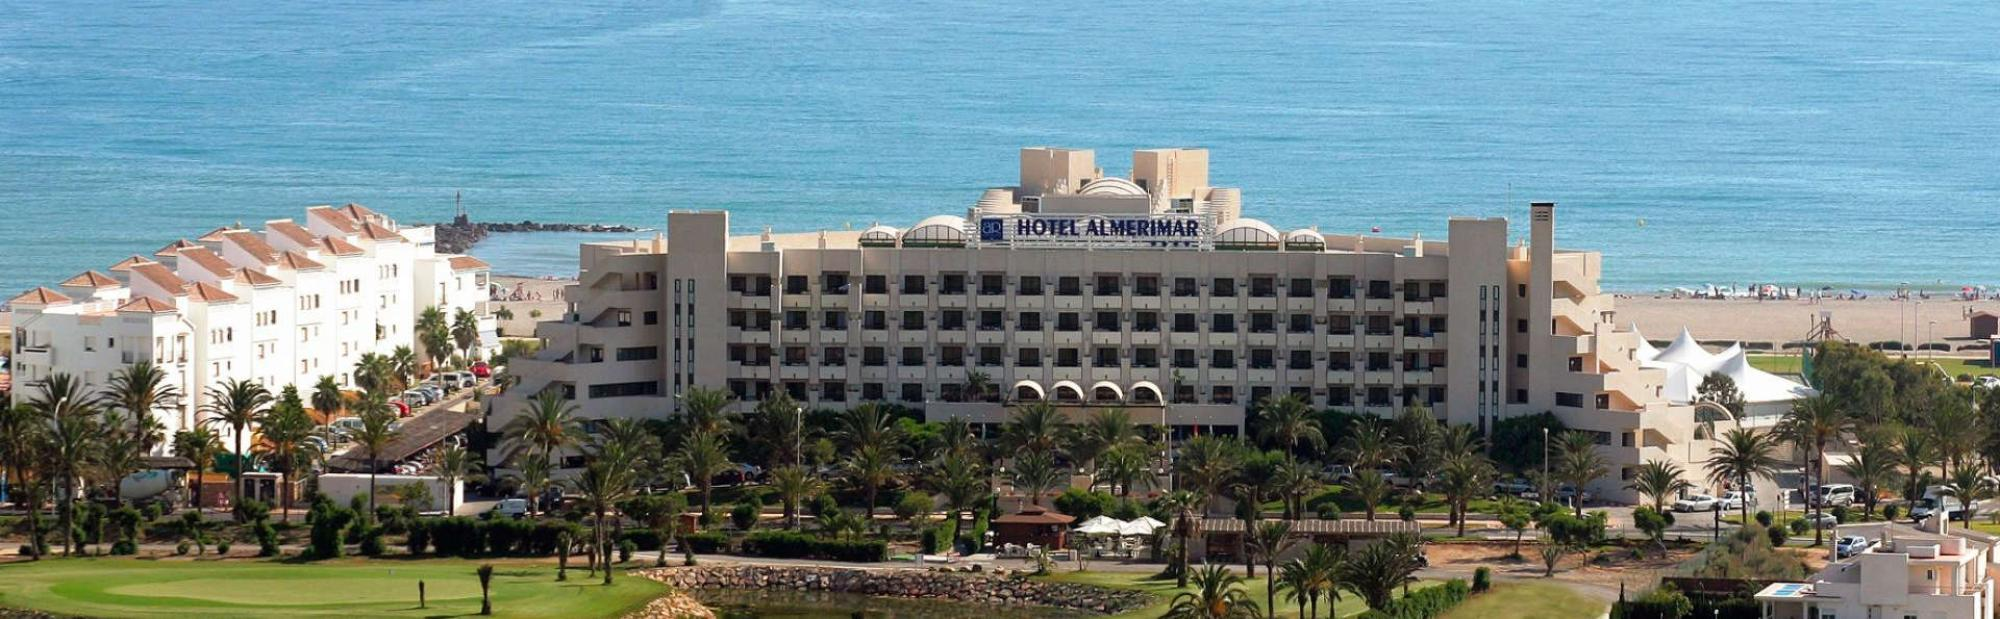 The Hotel Golf Almerimar's picturesque hotel in stunning Costa Almeria.